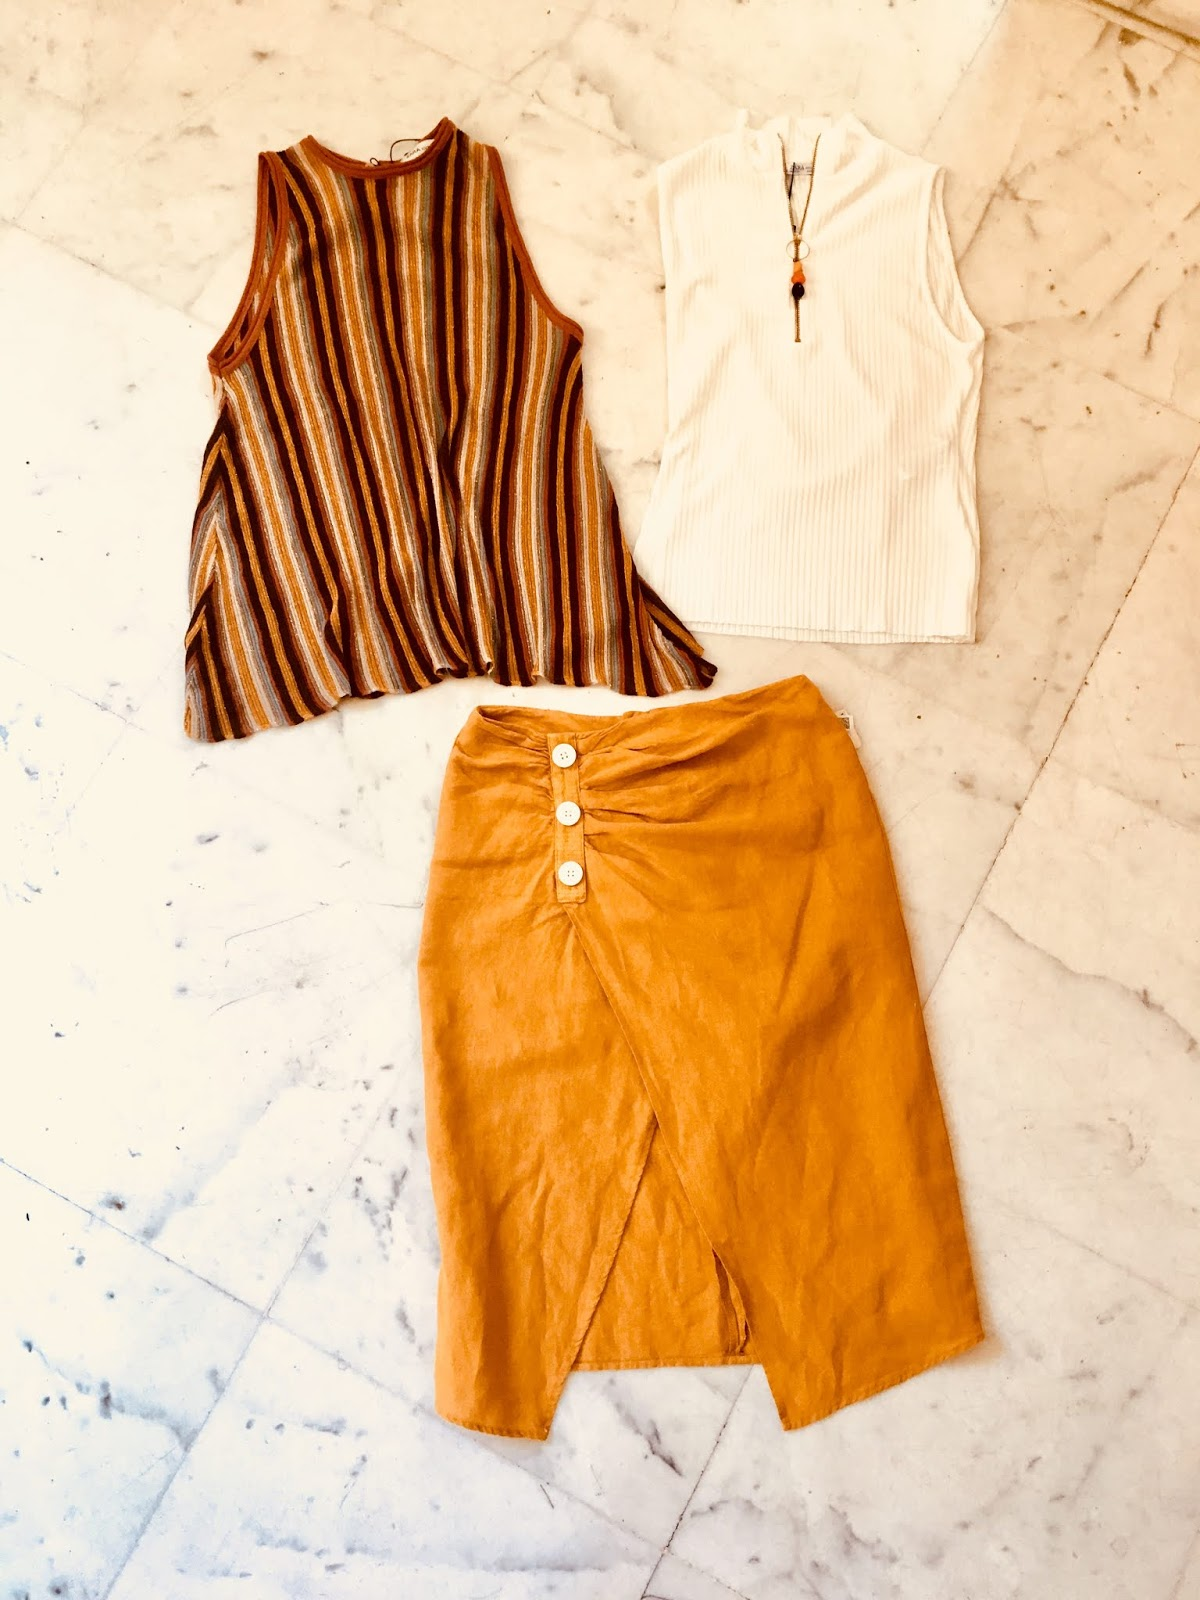 Zara Summer Shopping Haul